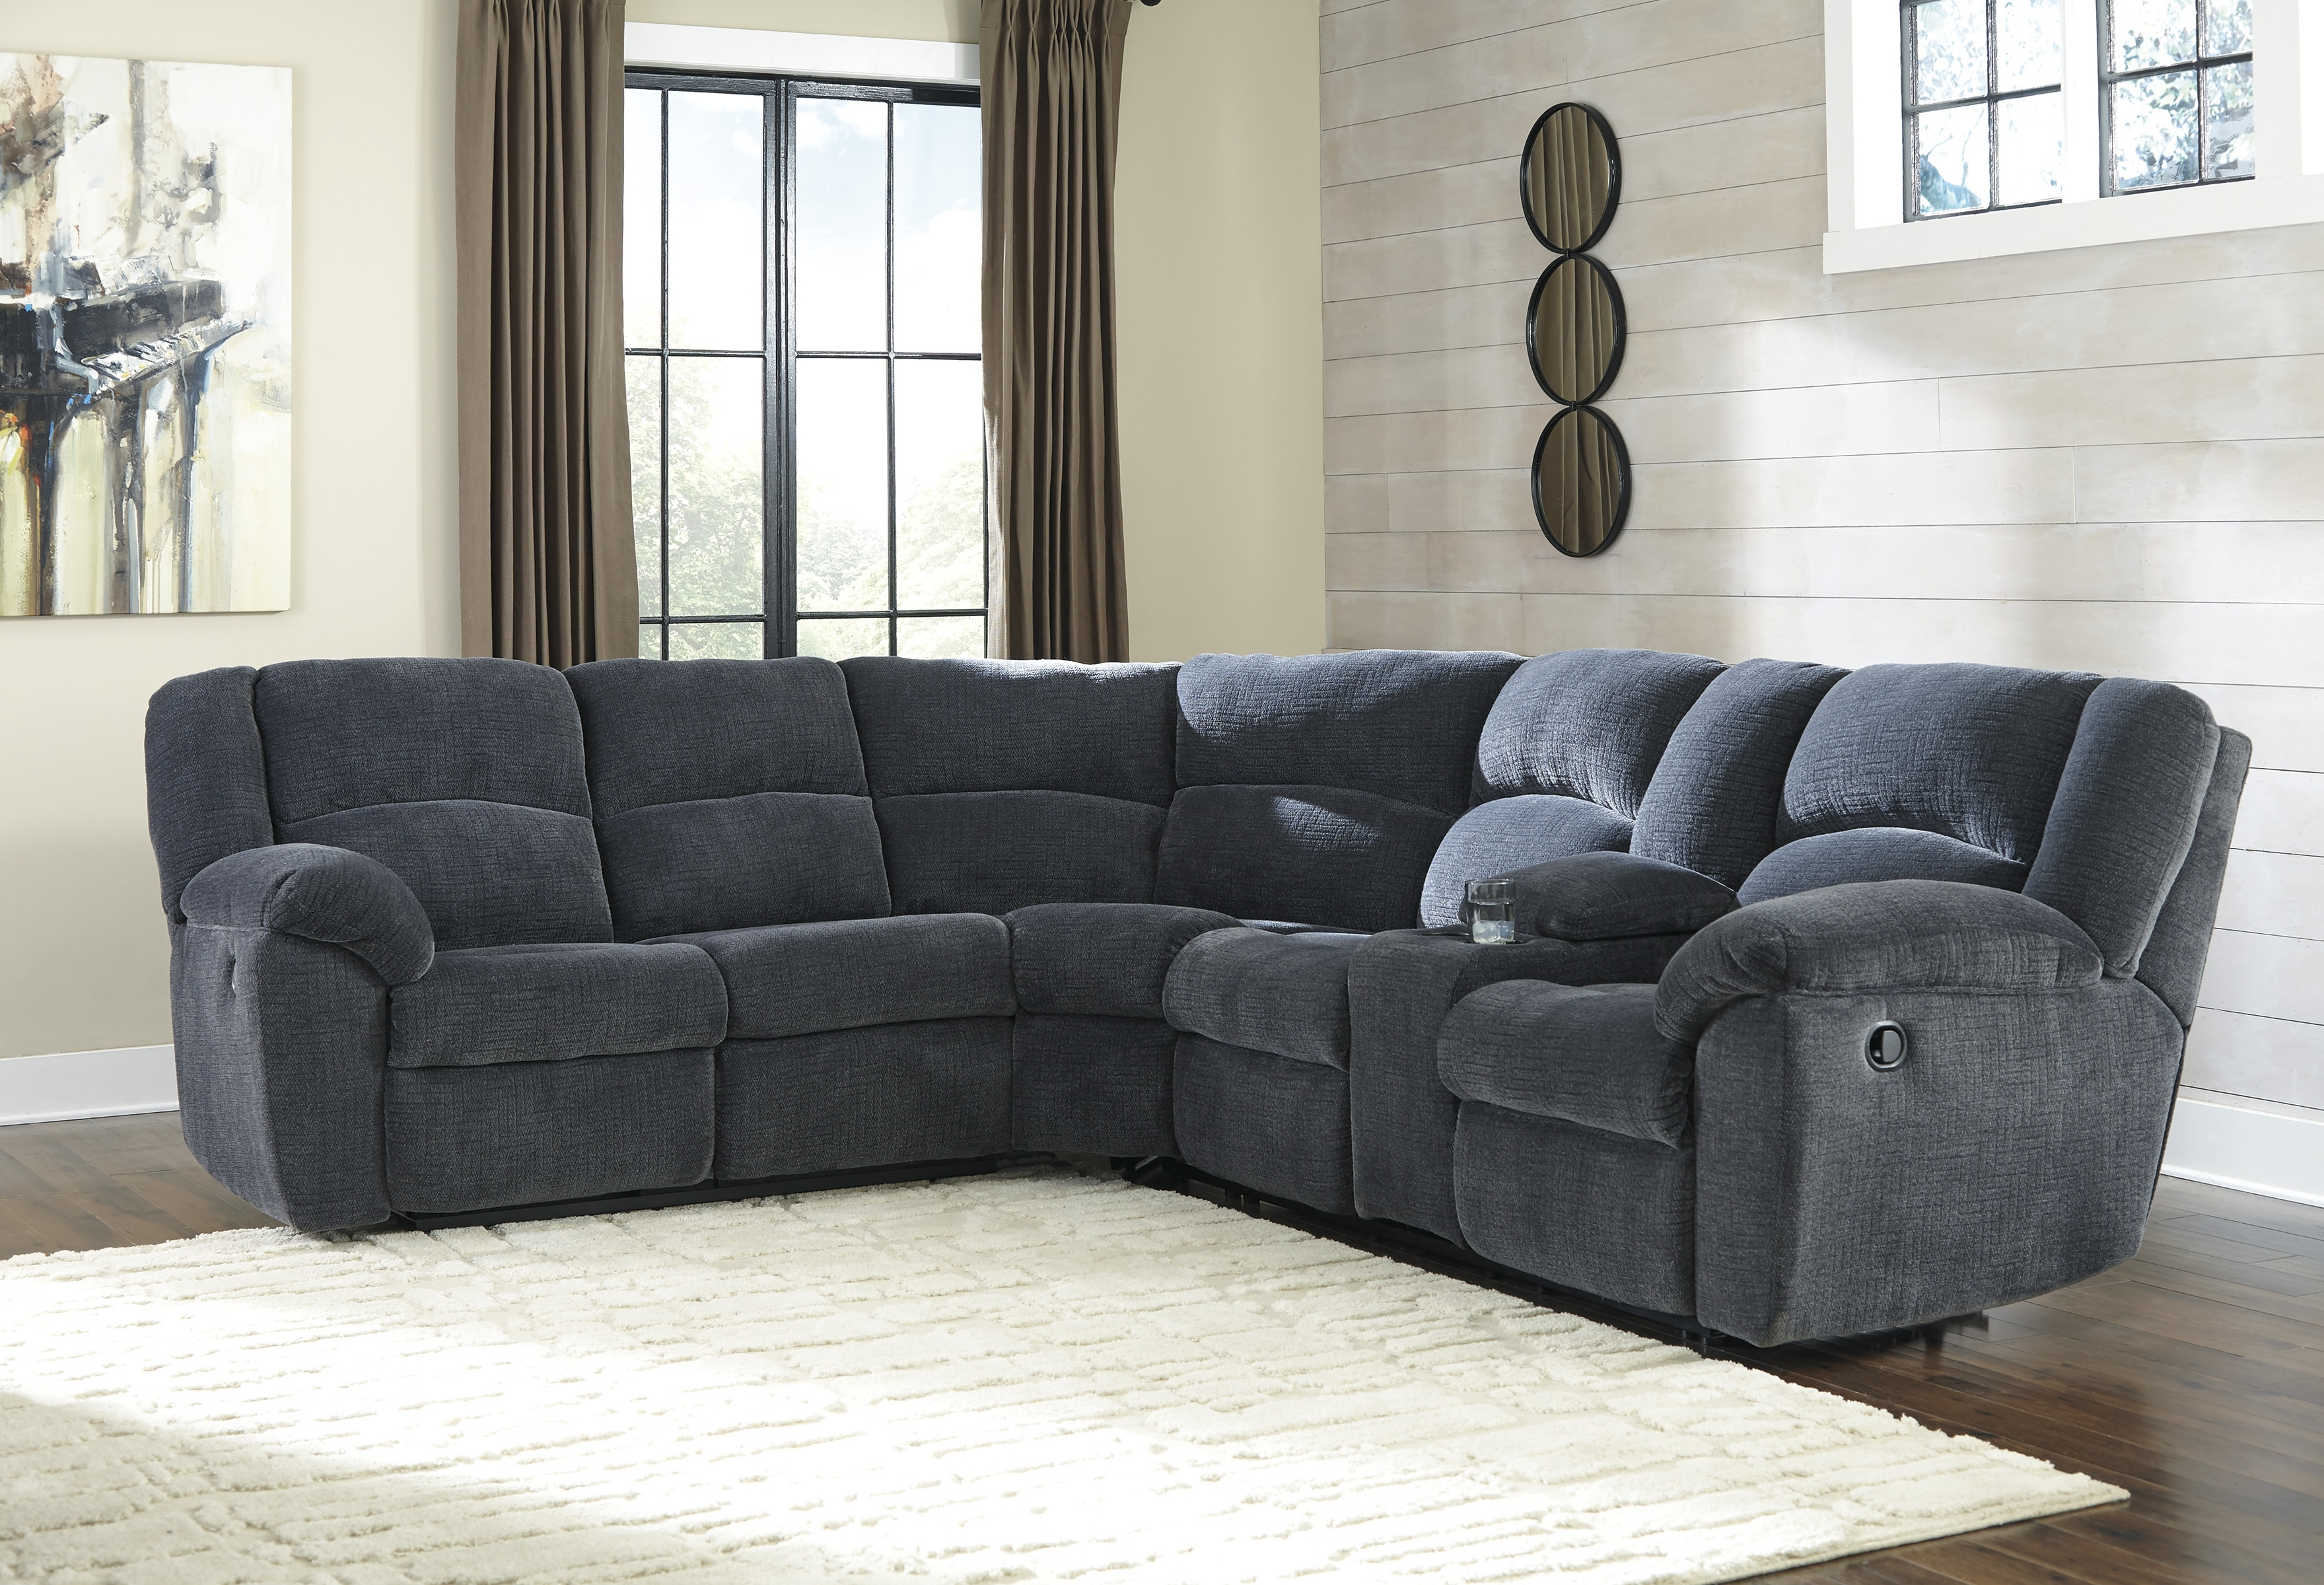 Sofa : Sectionals Sofas Cheap Sectional Sofas Under 400 Reclining With Fashionable Sectional Sofas Under (View 15 of 20)